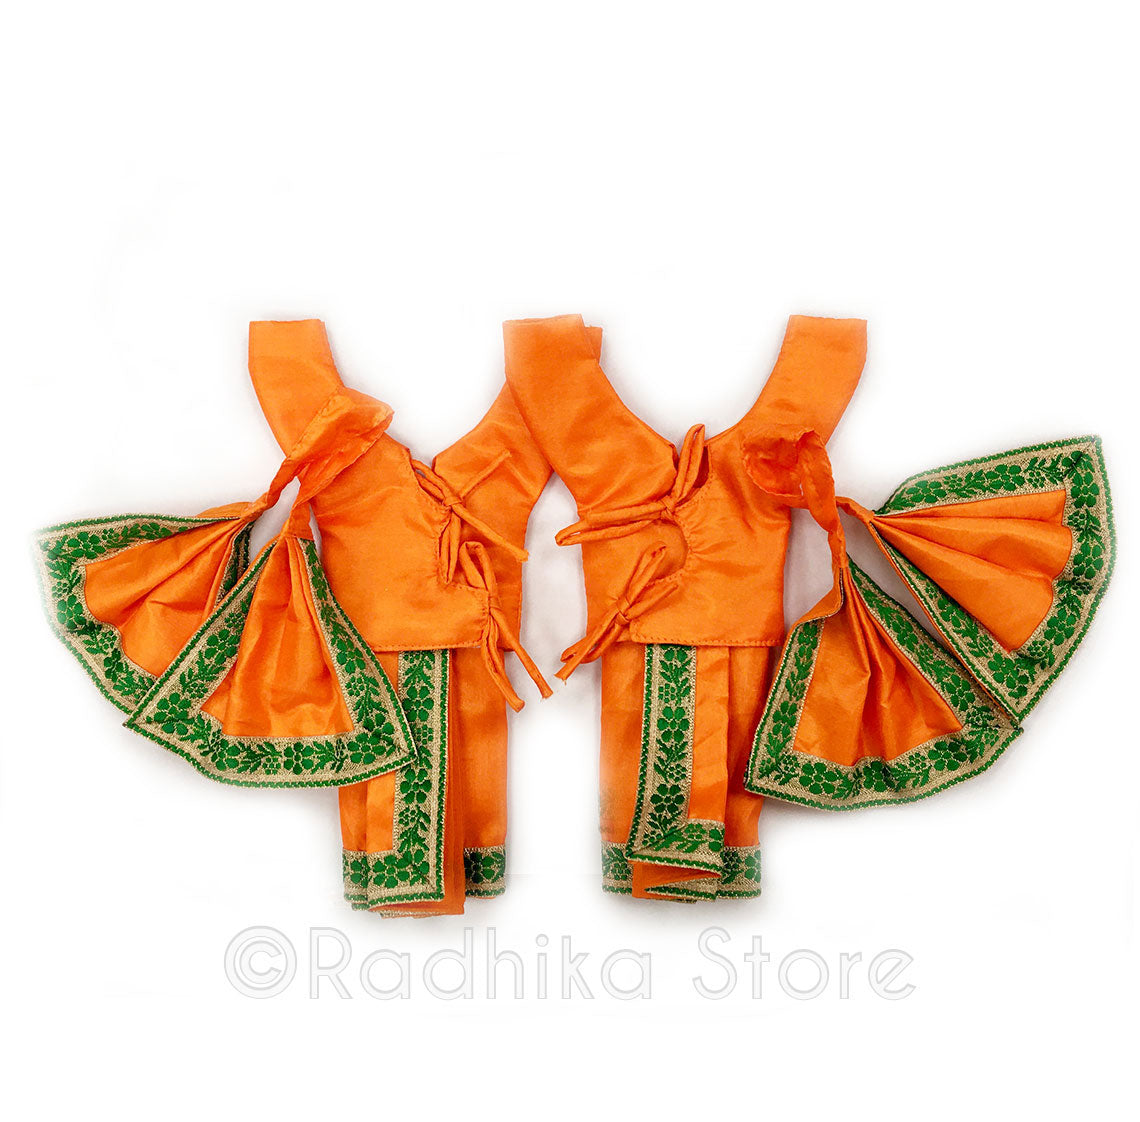 Nara Hari Orange and Green Deity Outfit - (Gaura Nitai) -Choose Size